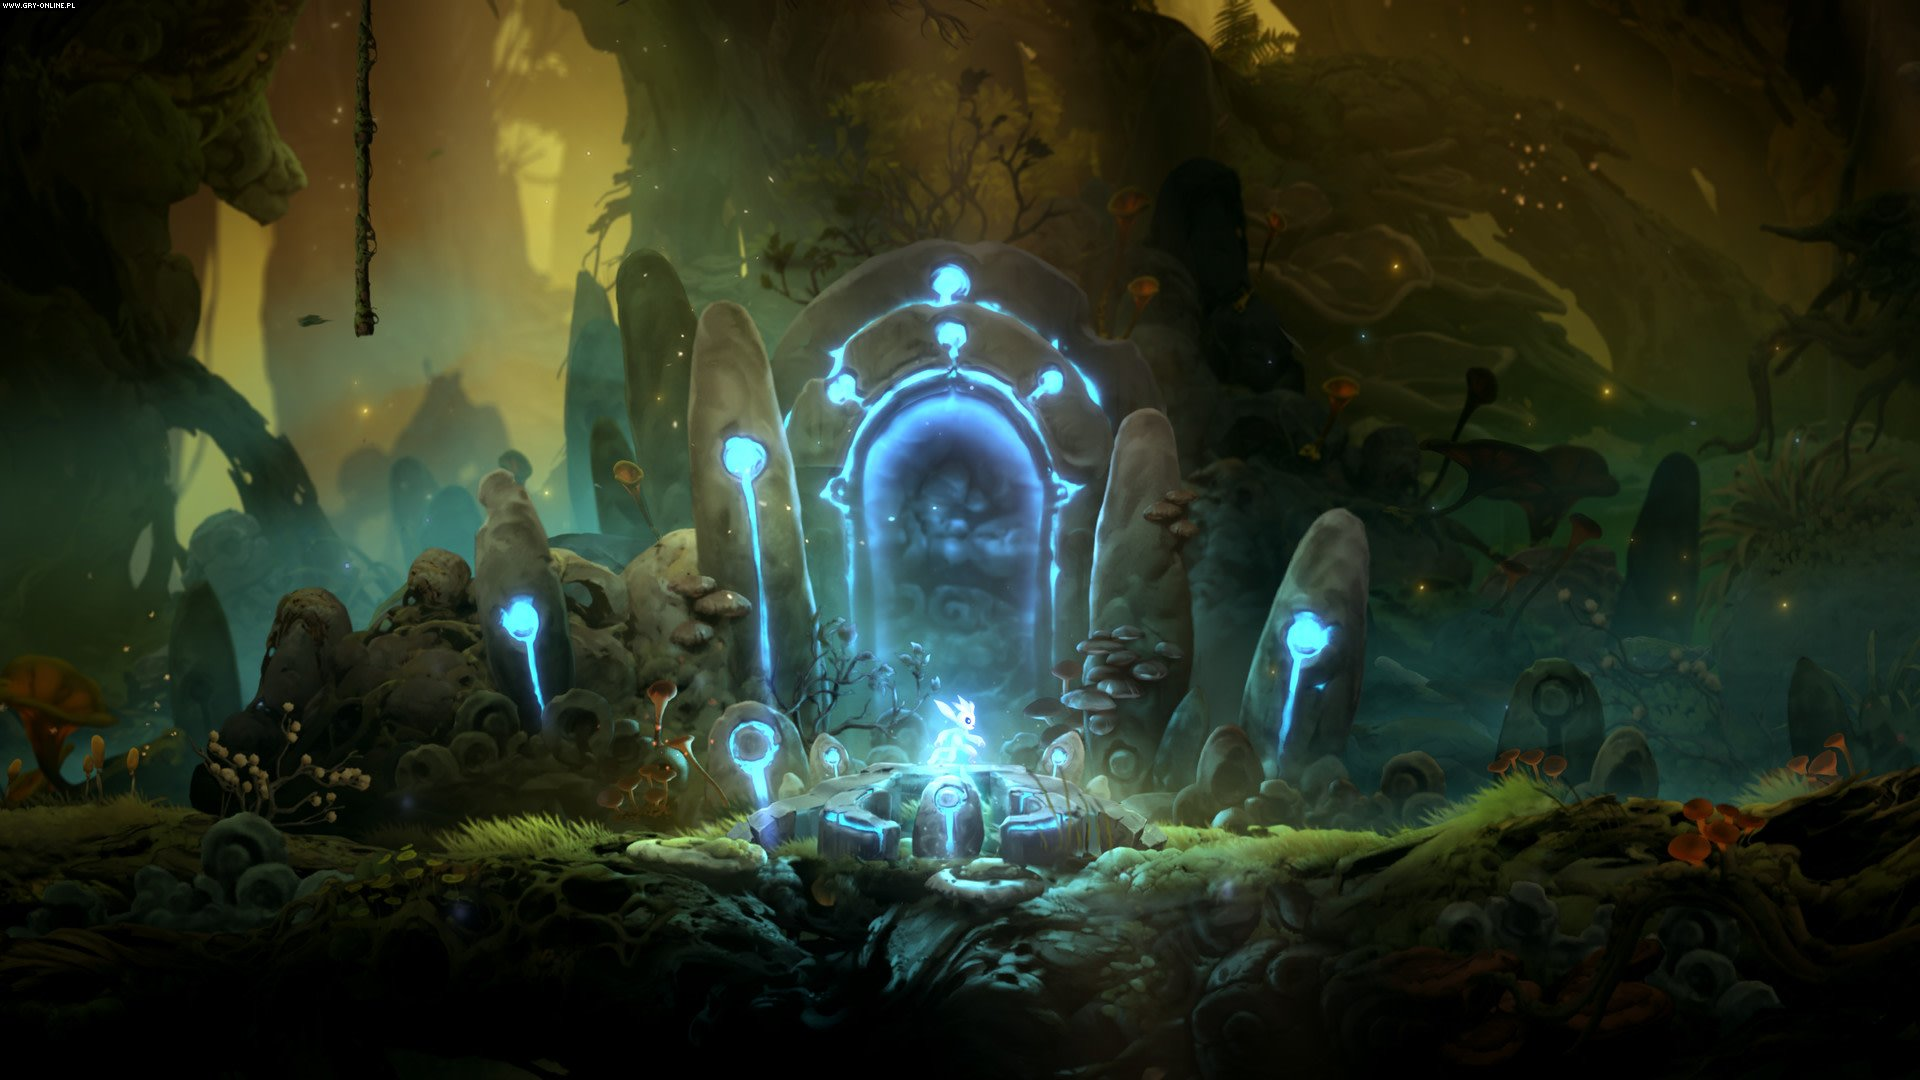 Ori and the Will of the Wisps PC, XONE Games Image 2/24, Moon Studios, Xbox Game Studios / Microsoft Studios